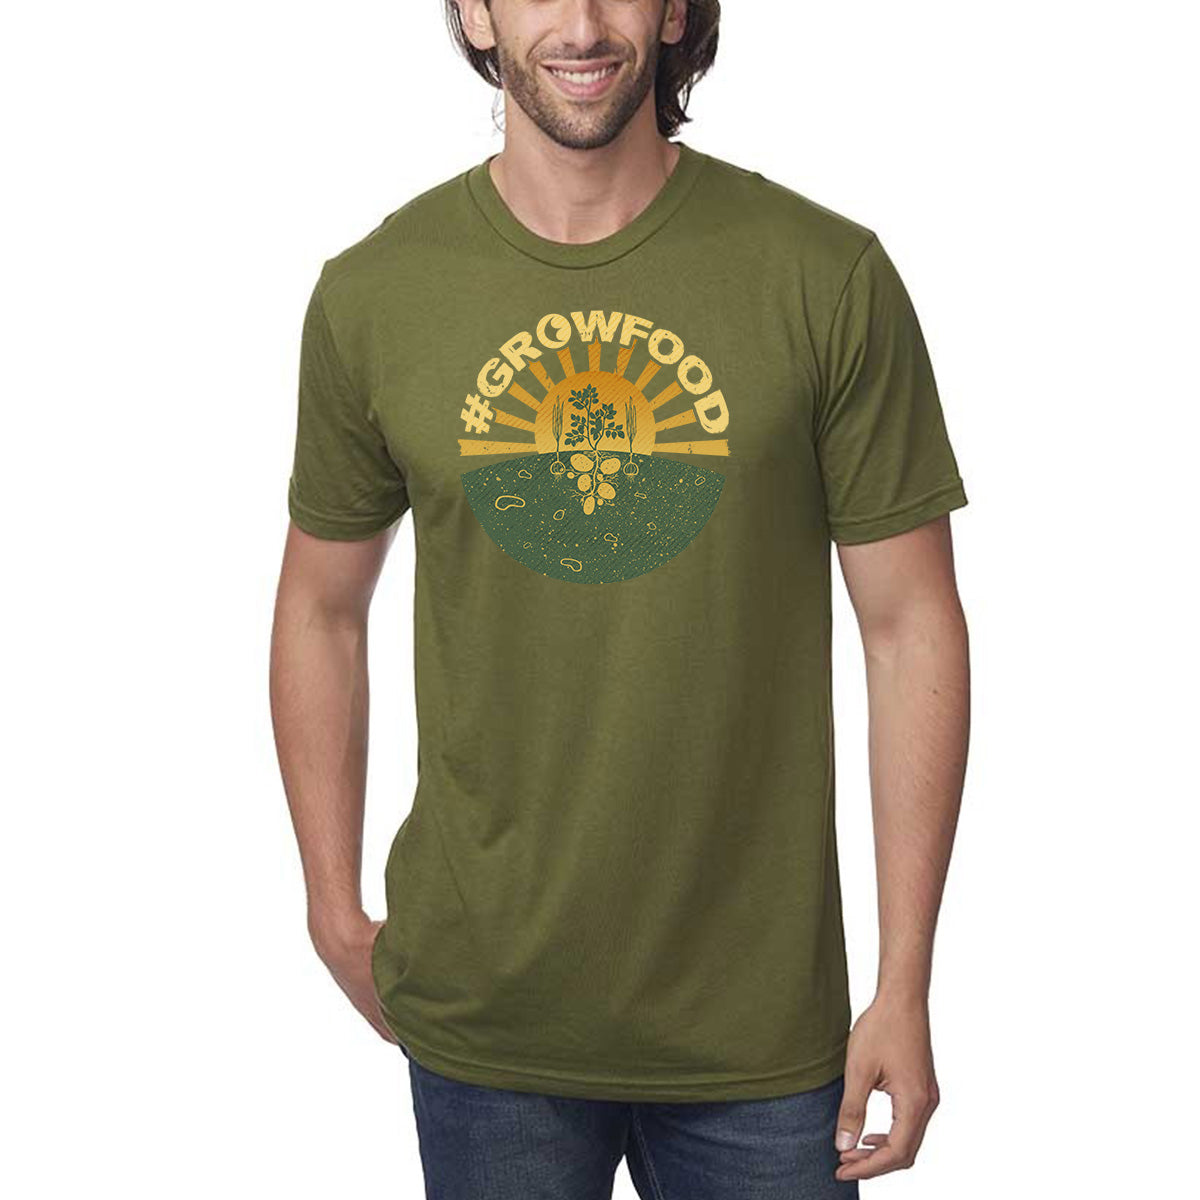 #GrowFood - All Natural - Hemp / Cotton - T-Shirt - Unisex